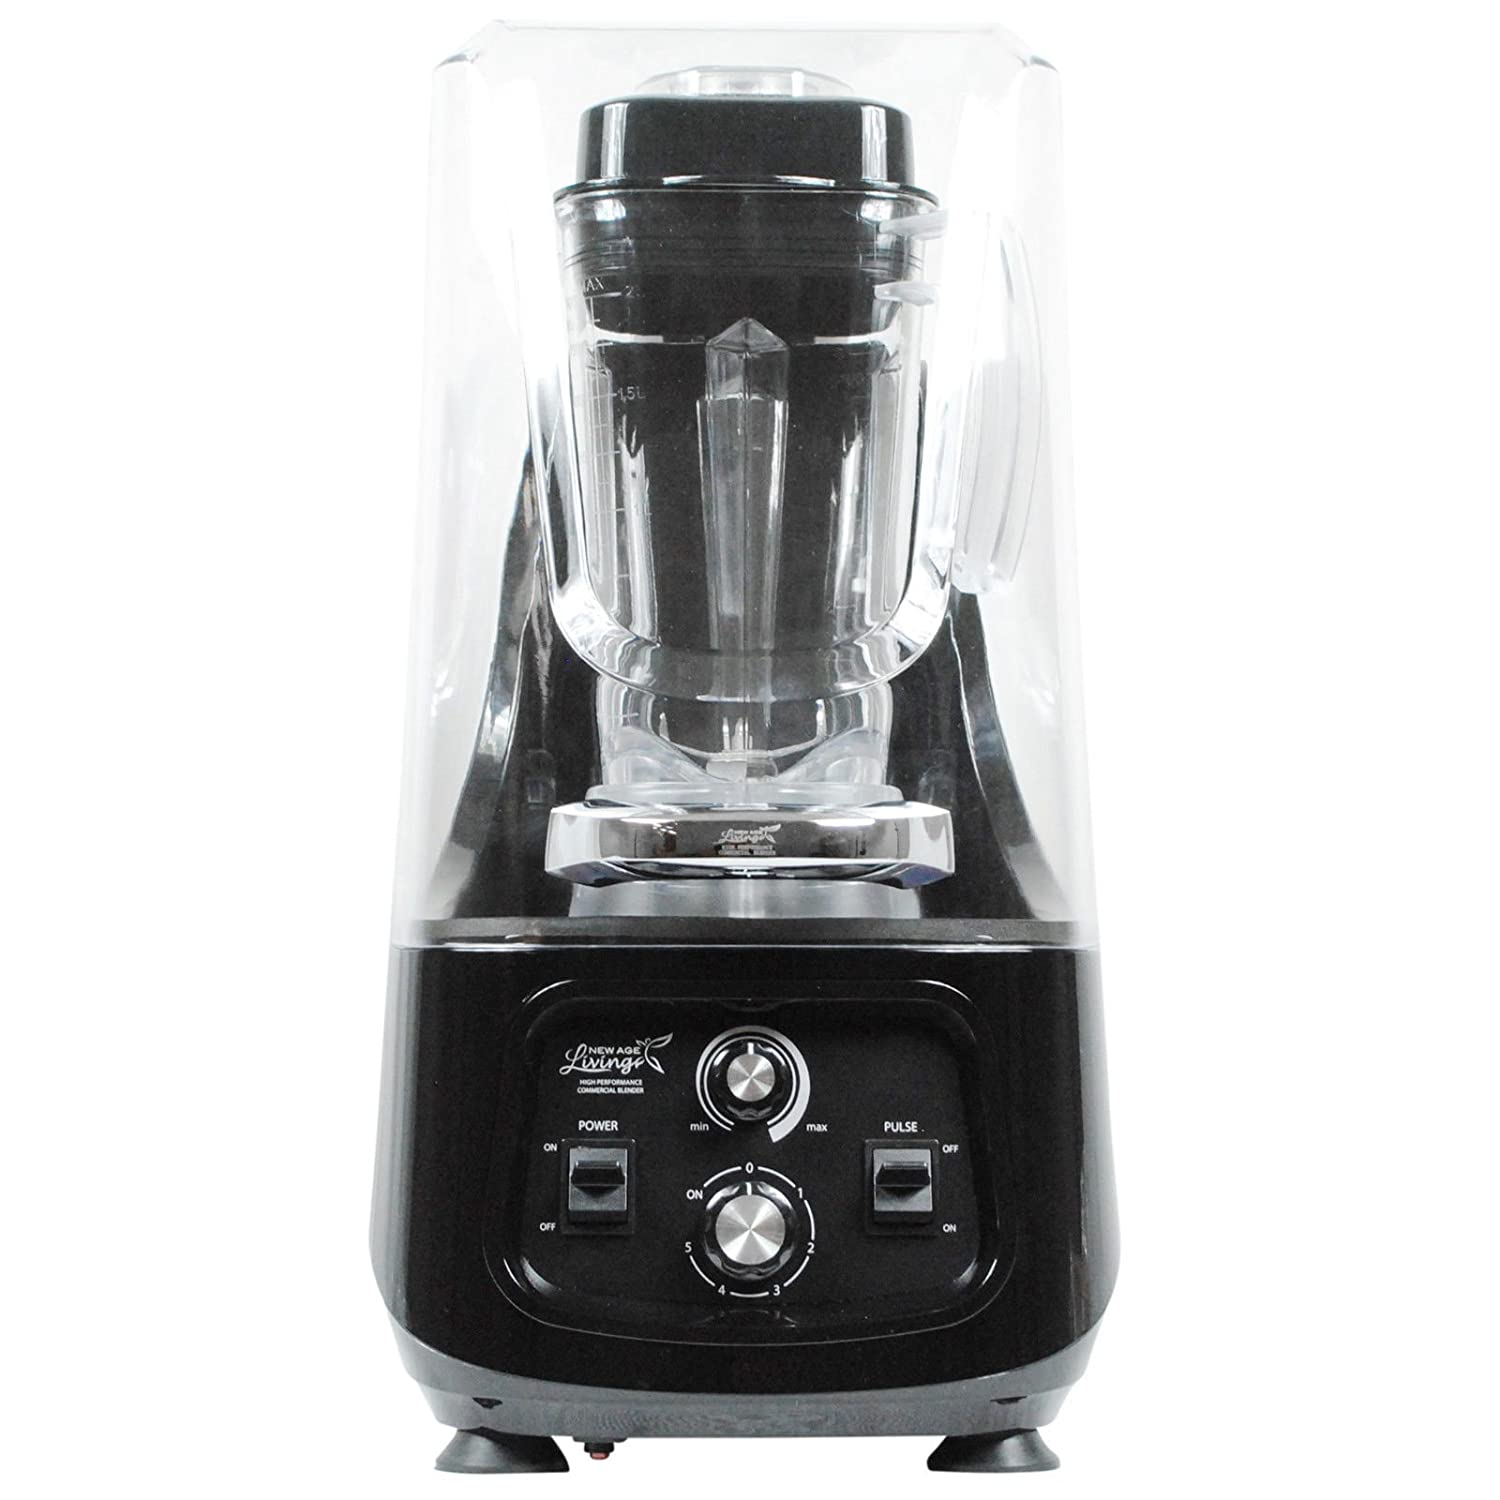 New Age Living Quiet Series Blender with Shield | Shrouded Soup & Smoothie Blender | 3.5HP Peak Power | Blends Frozen Fruits, Vegetables, Greens, Even Ice with Less Noise | 5 Year Warranty